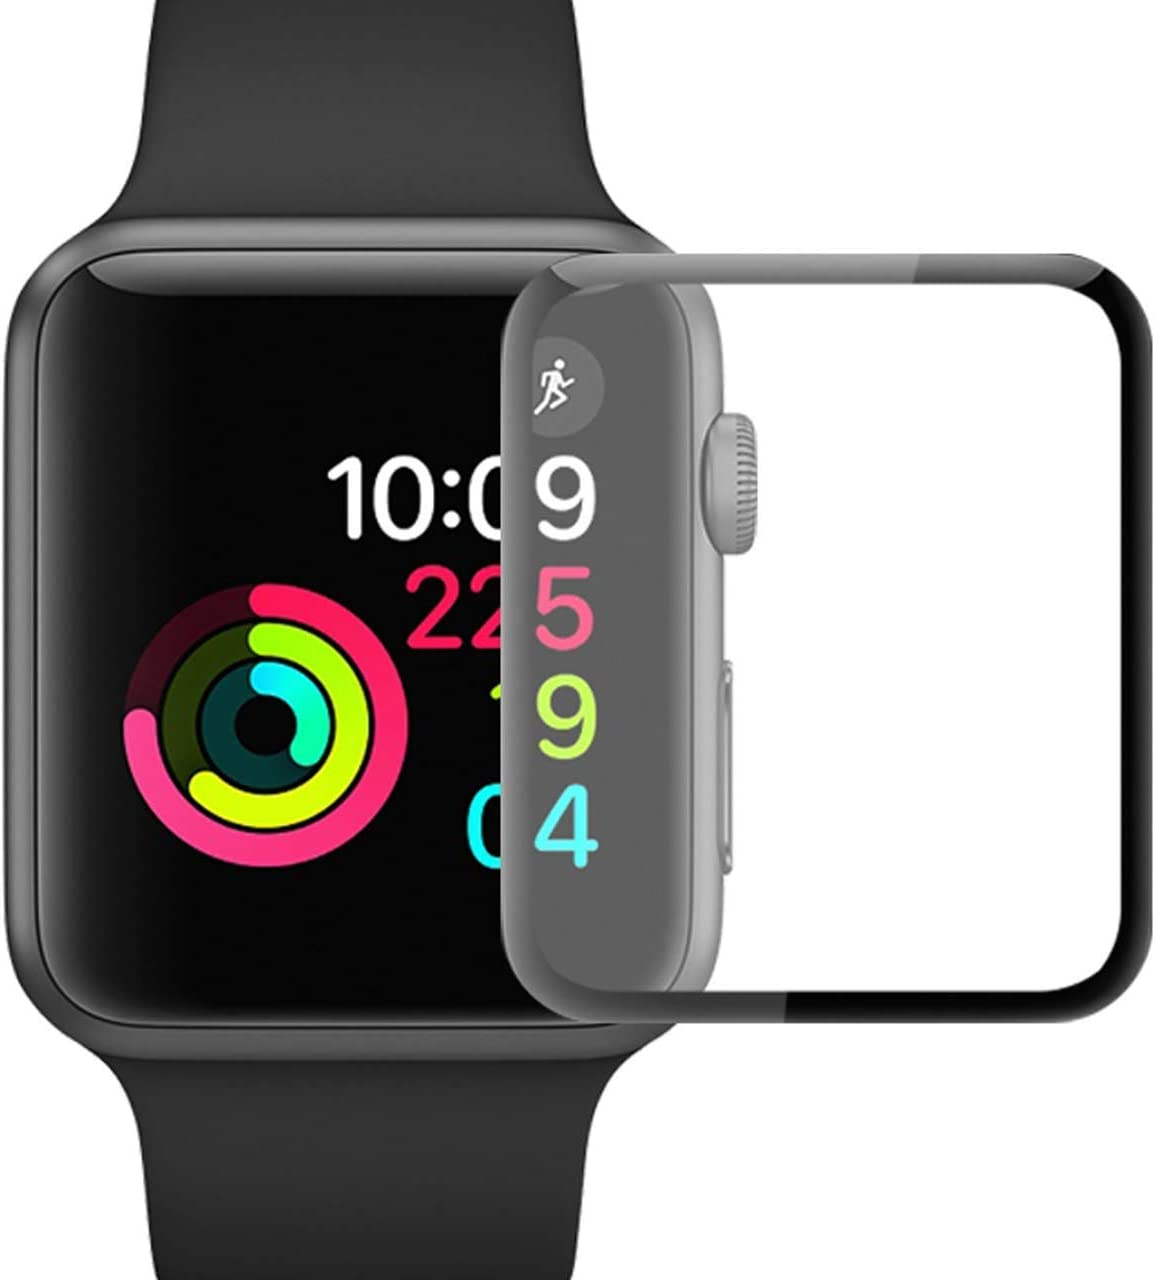 iWatch Screen Protector for Apple Watch 40mm Series 4 [3 Pack] HD Clear Flexible Soft Full Coverage Screen Protector Scratch-Resistant Anti-Bubble